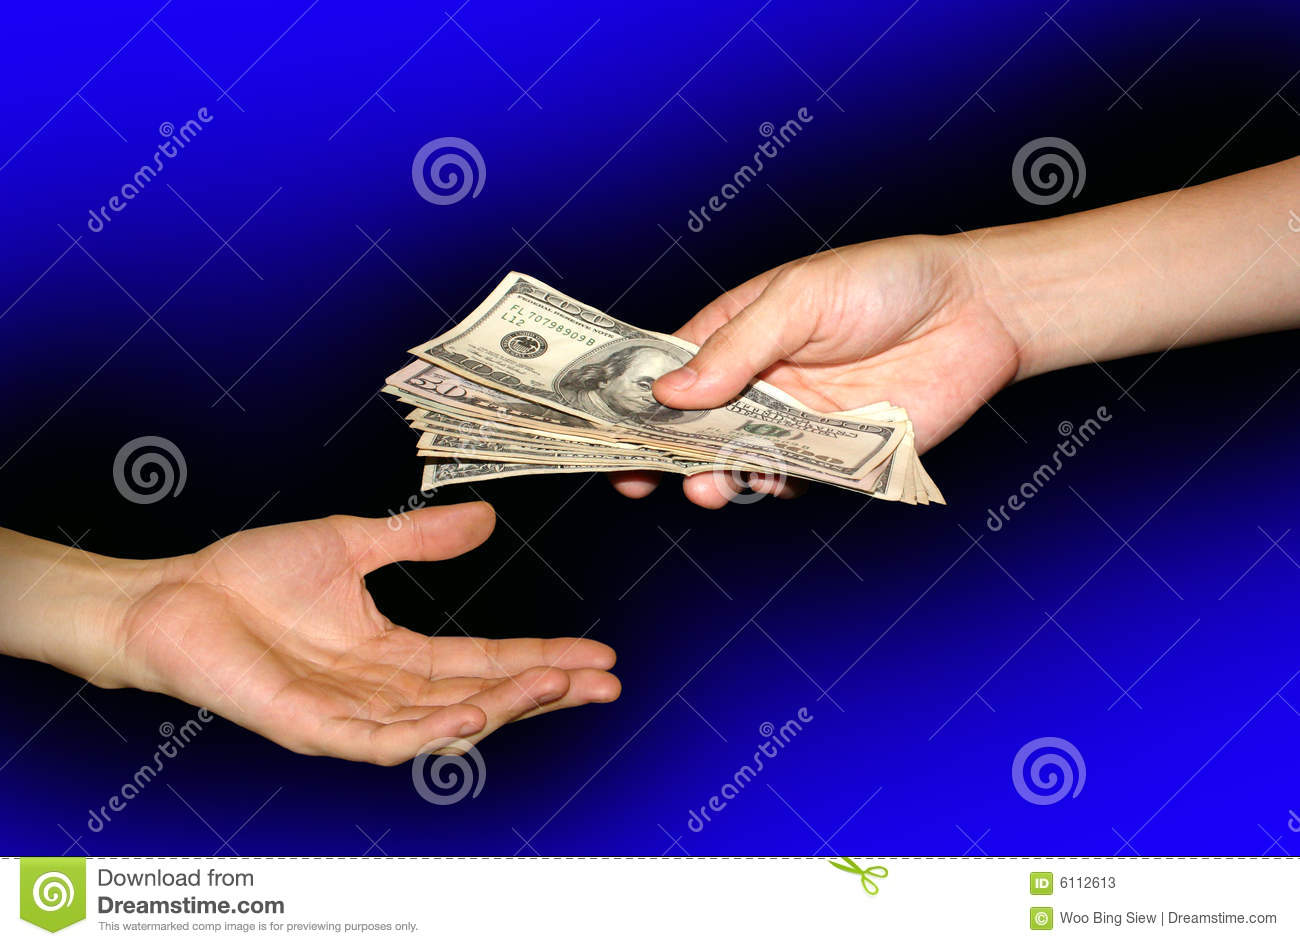 Give and receive money